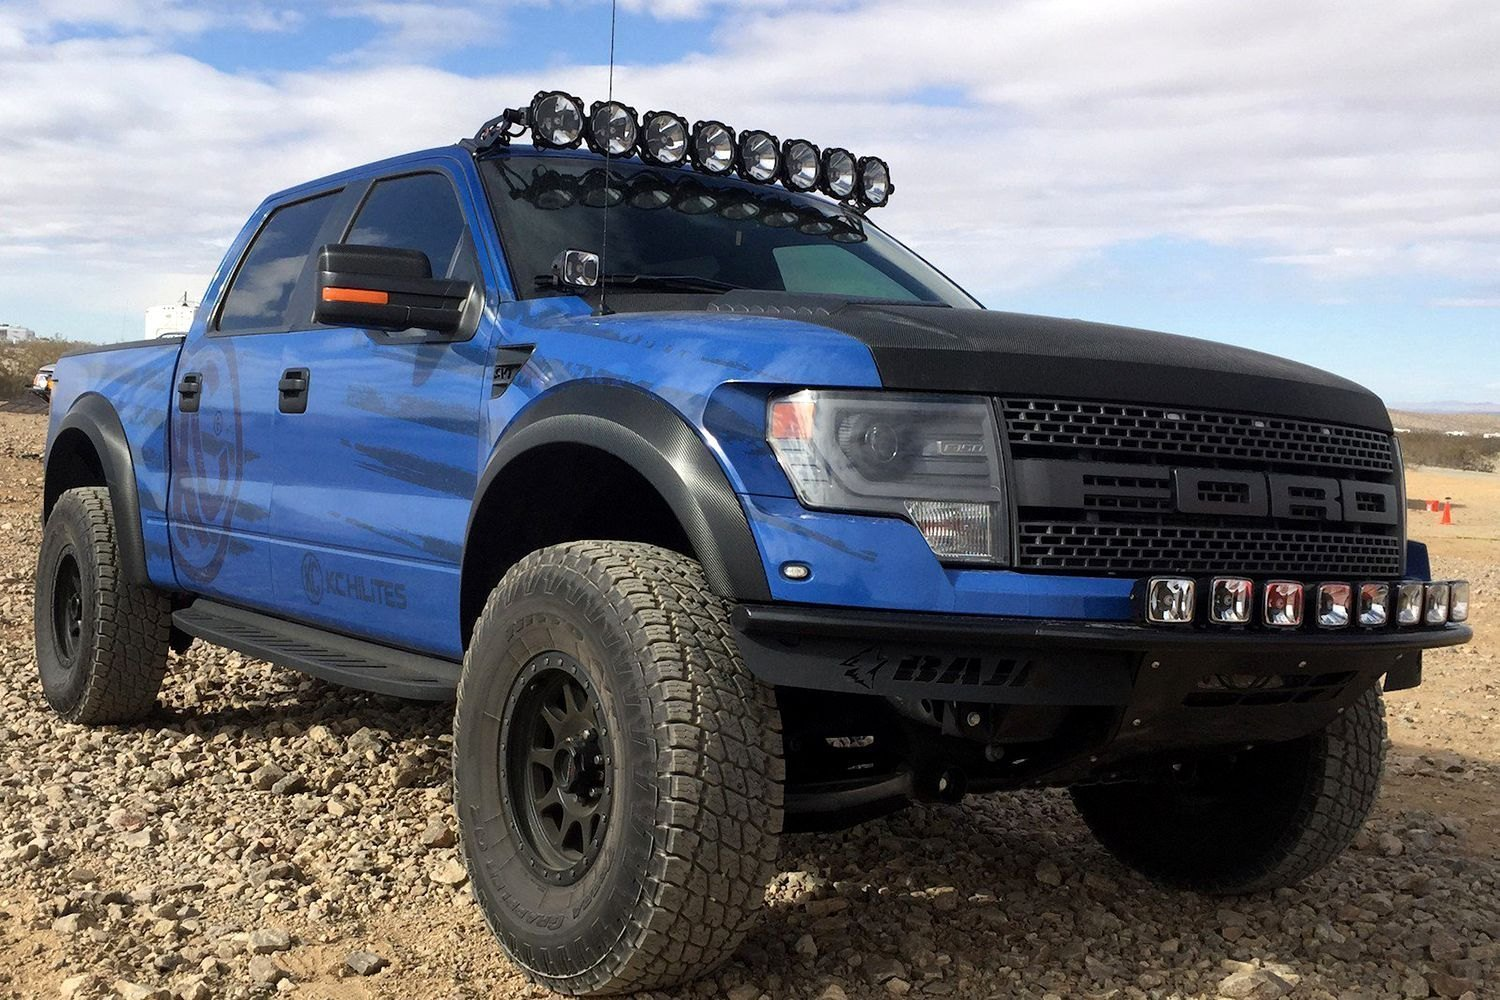 Kc hilites gravity pro6 combo beam led light bar hilites gravity pro6 led light bar aloadofball Image collections